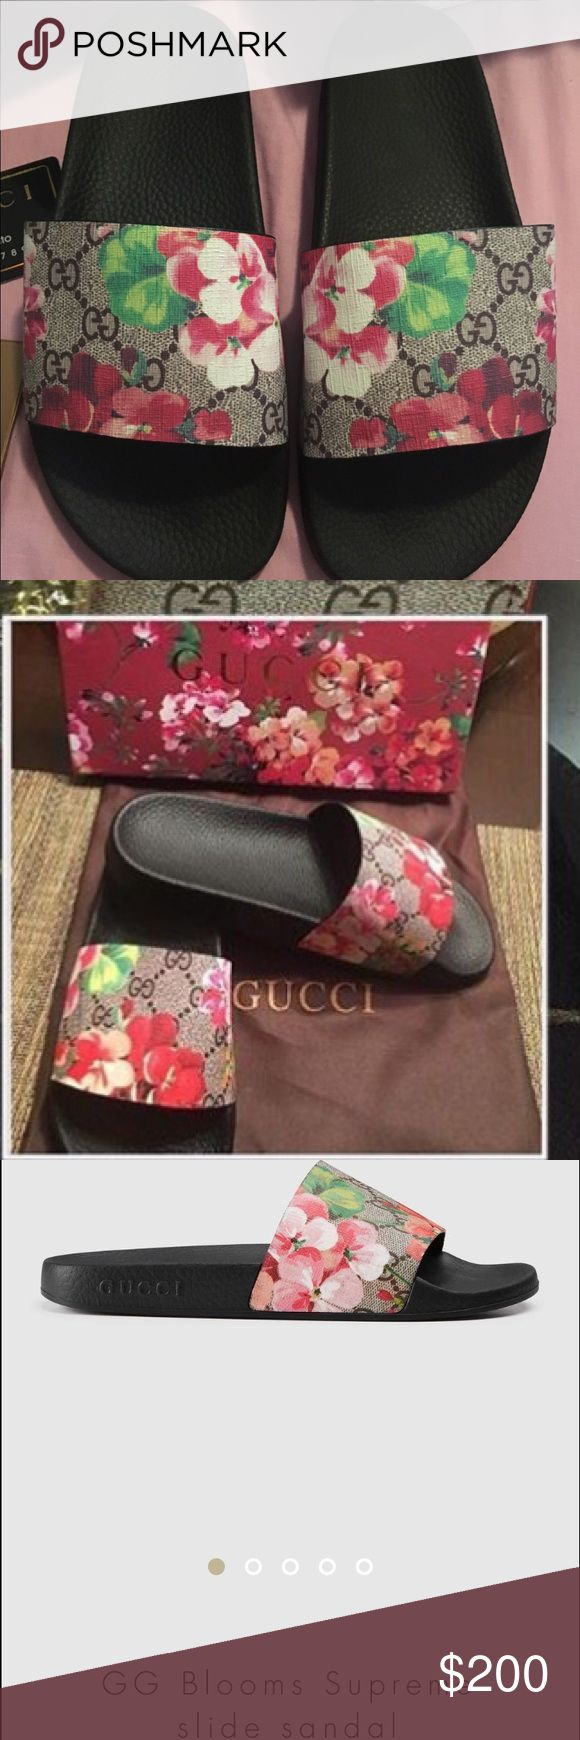 GG Blooms Supreme Slide Sandal Comfortable floral slide sandal perfect for a casual day out. Gucci Shoes Sandals